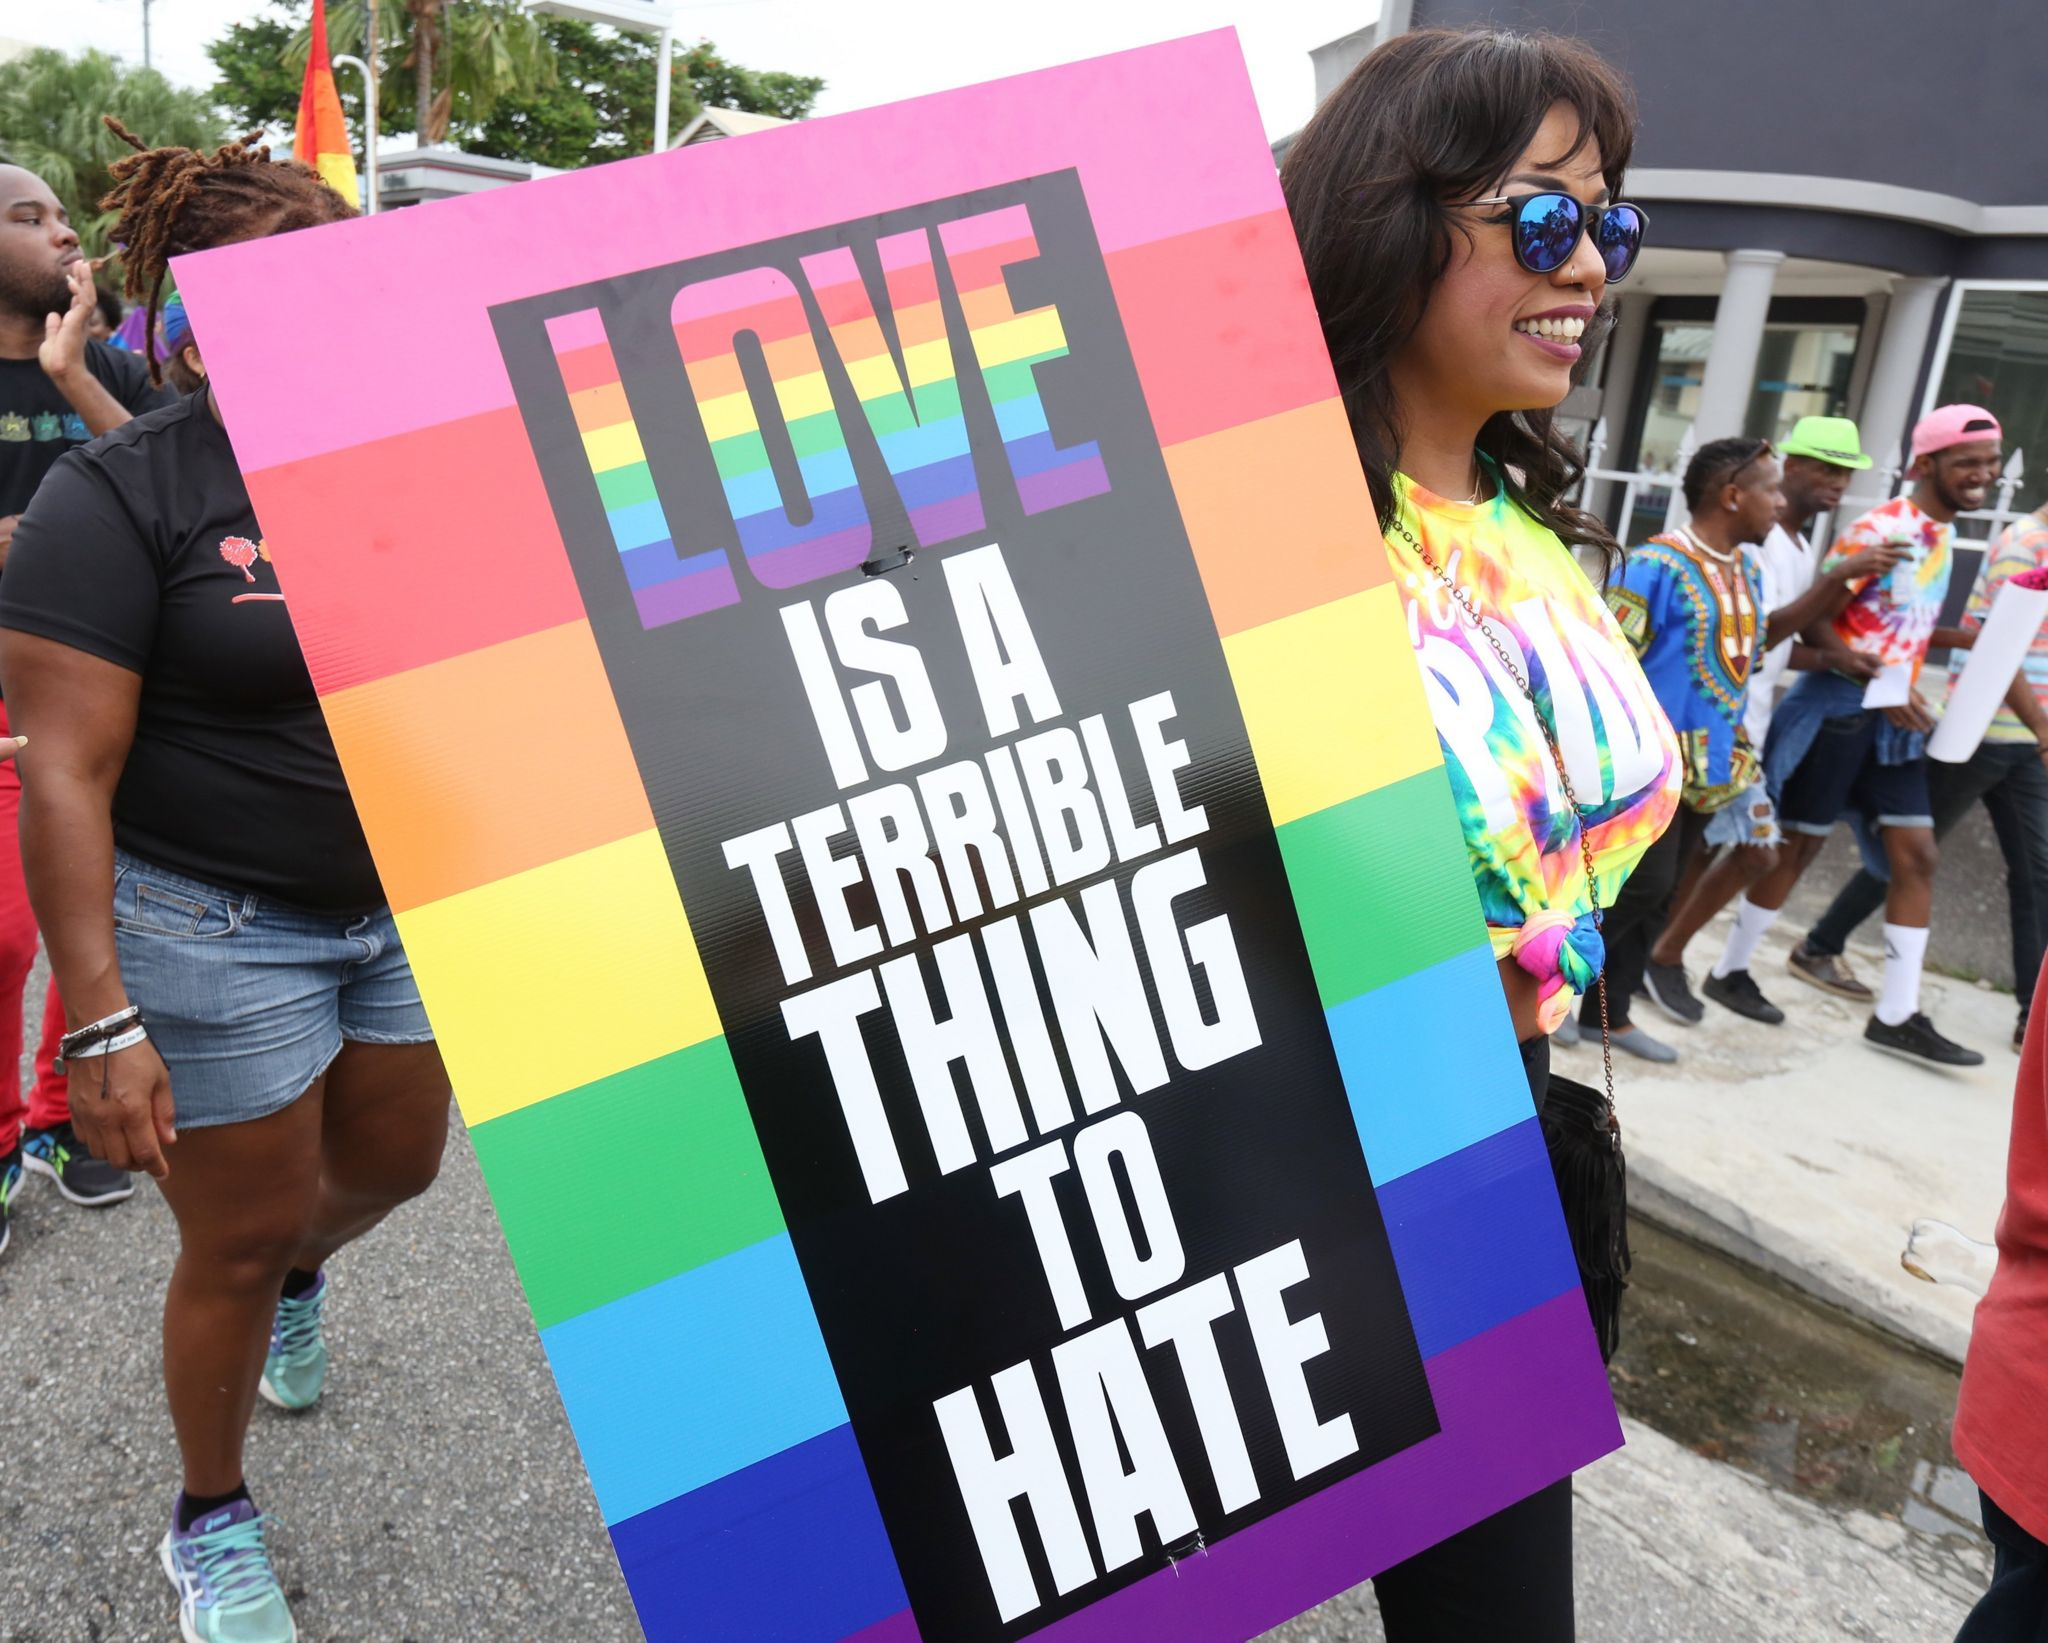 Supporters of LGBT rights and equality conclude three weeks of solidarity-building events with a festive parade during the first annual Pride Arts Festival on July 28 in Port of Spain, Trinidad